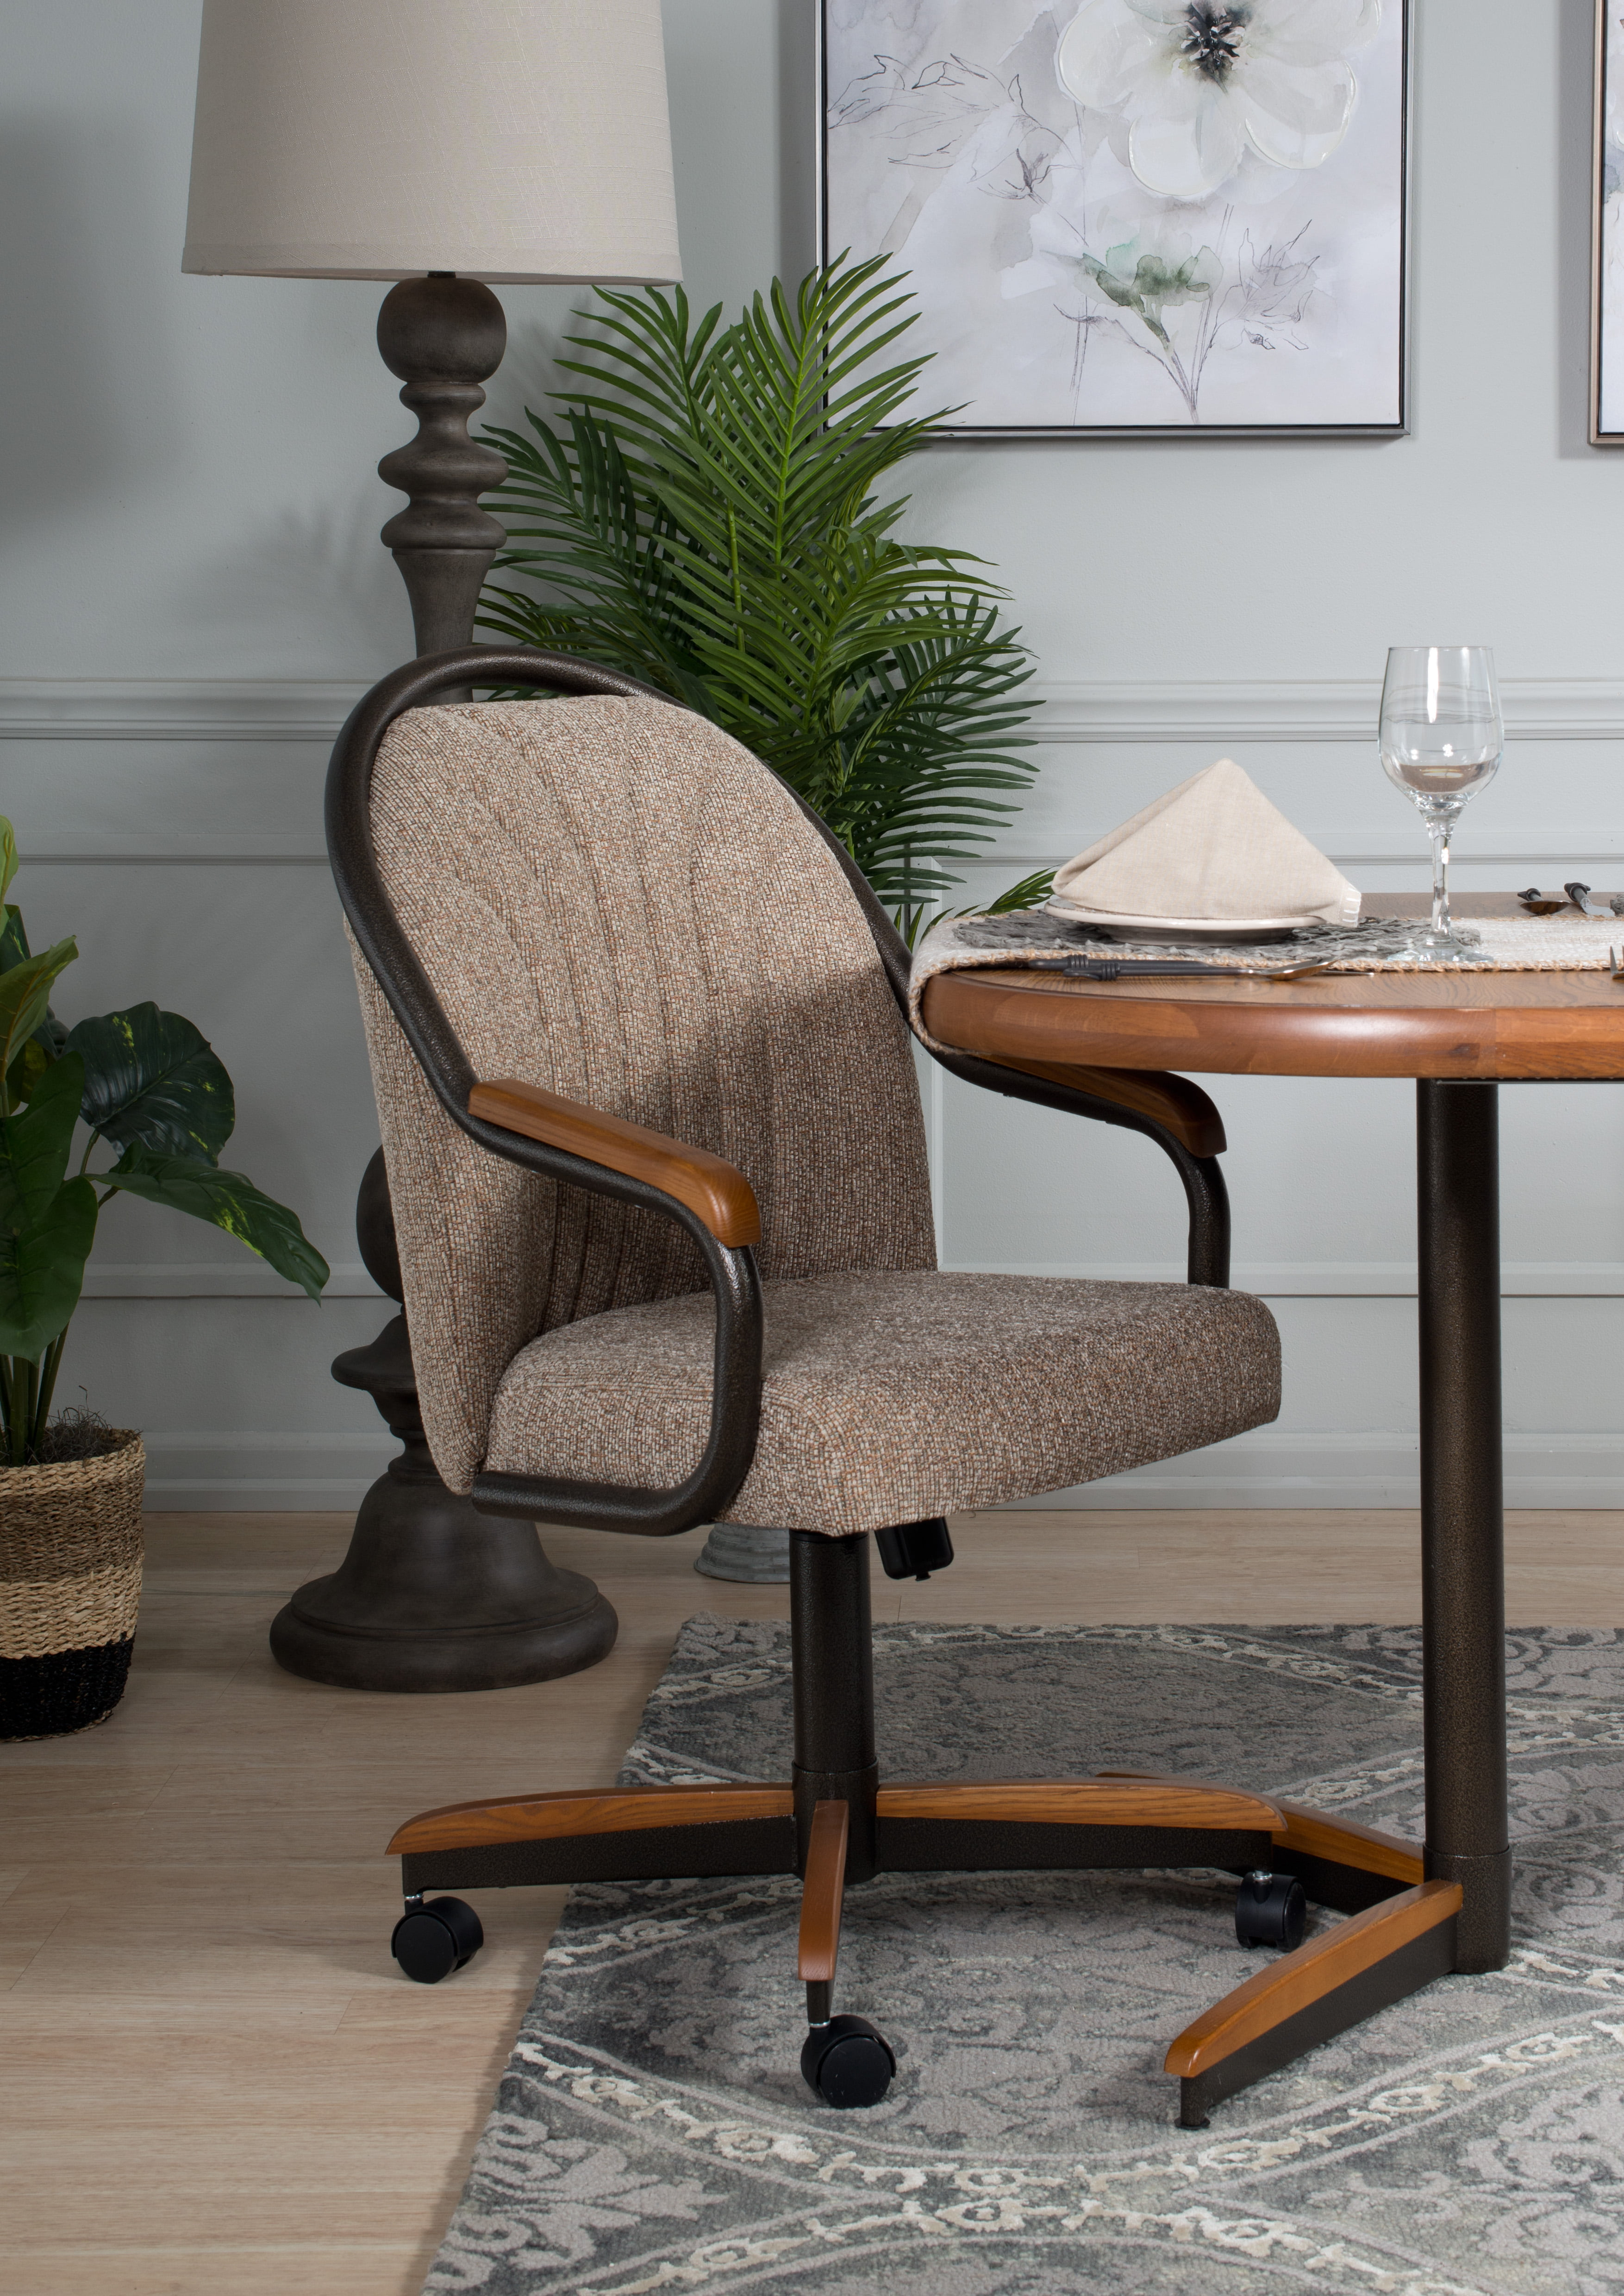 Caster Chair Tilt Rolling And Swivel, Fabric Dining Room Chairs With Casters